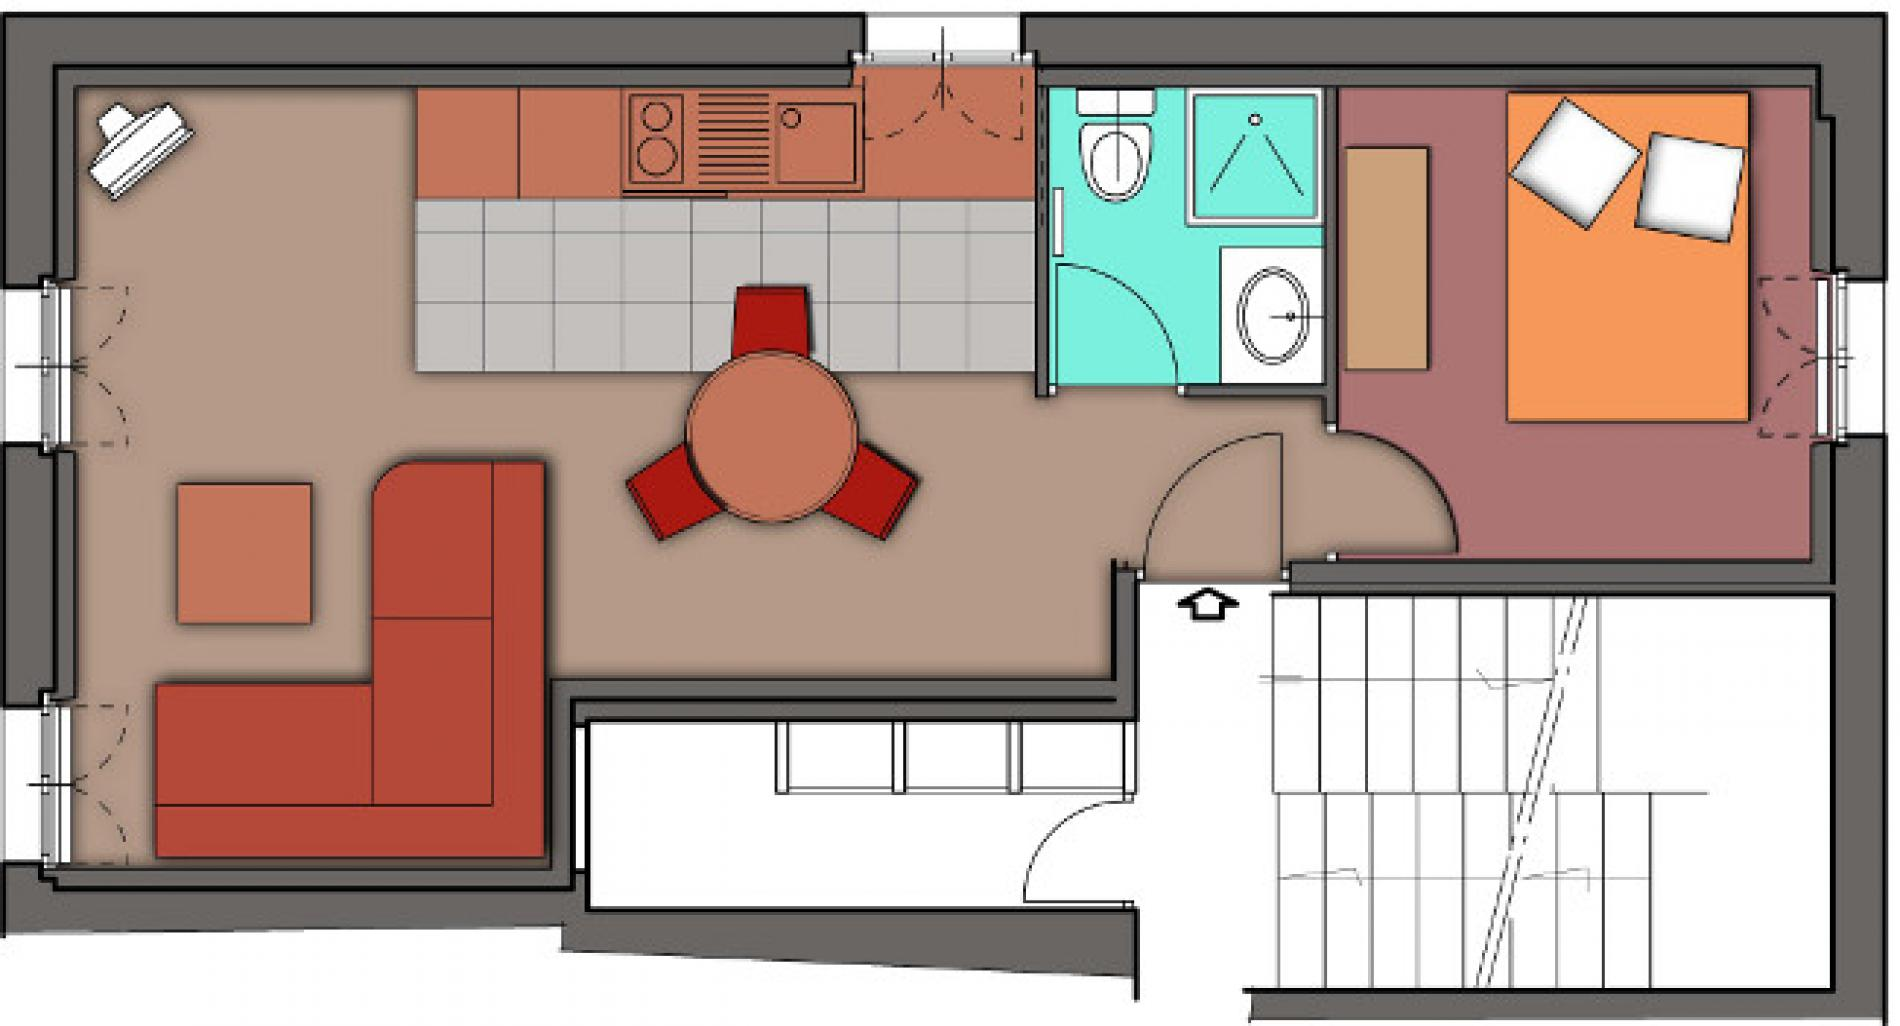 Plan des appartements